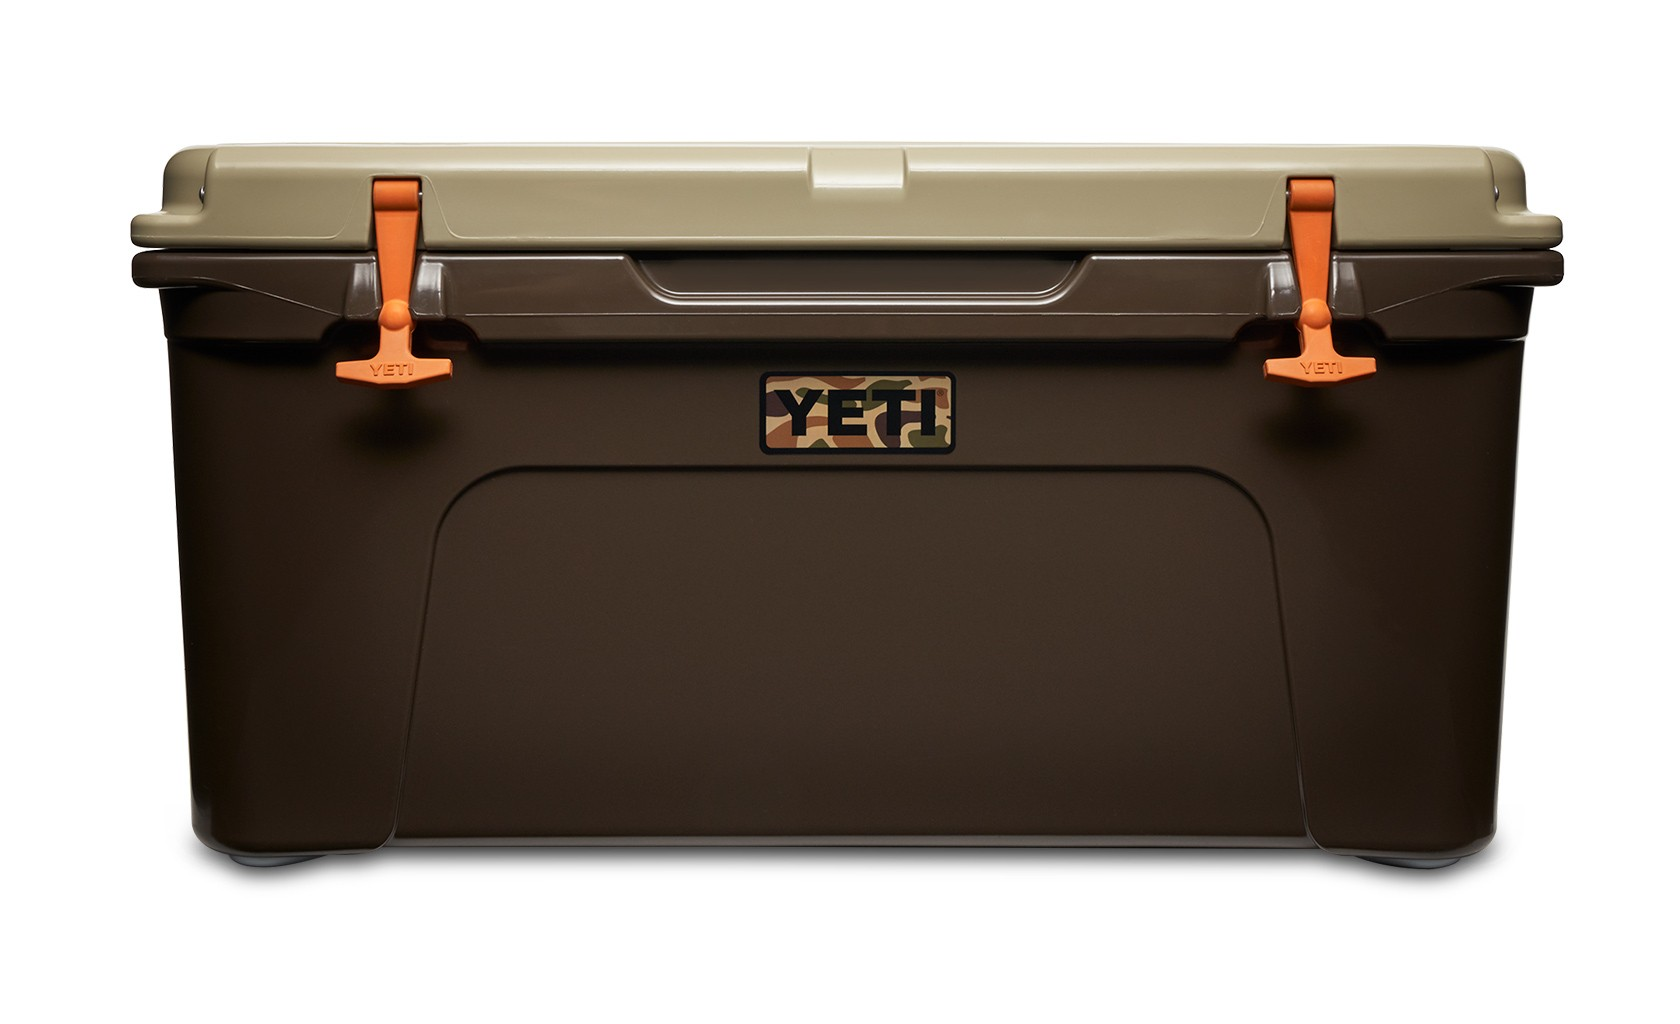 Yeti Tundra 65 Wetlands Limited Edition — JC's Outdoors